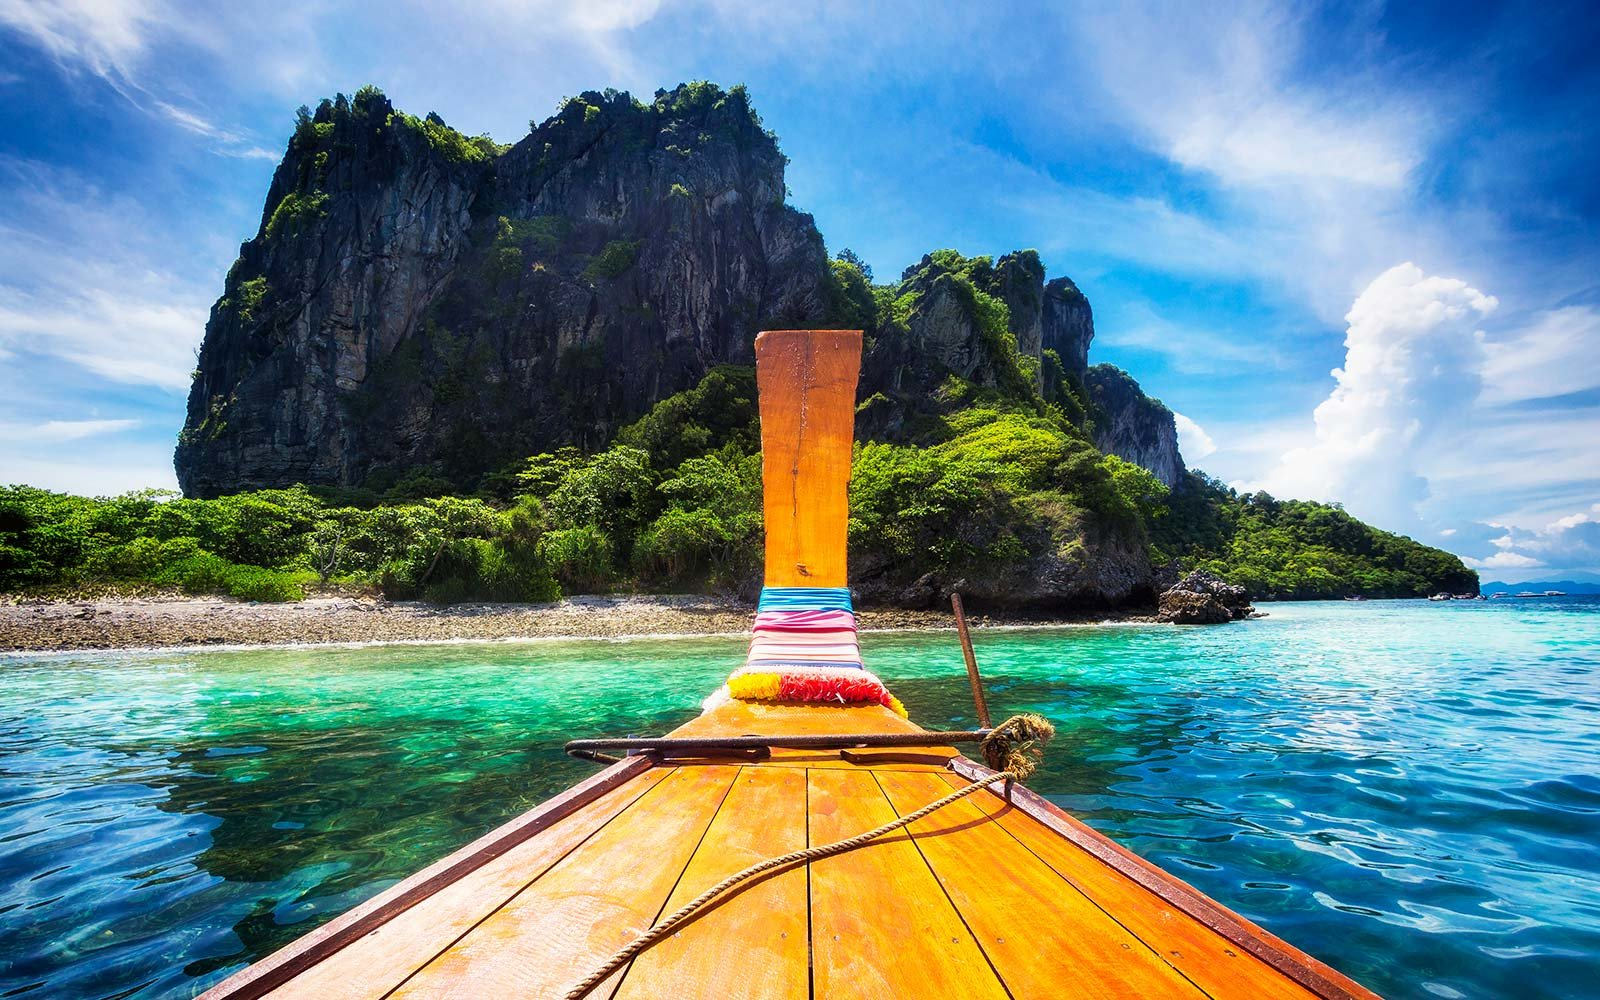 Long Tail Boat In Maya Bay, Koh Phi Phi, Thailand